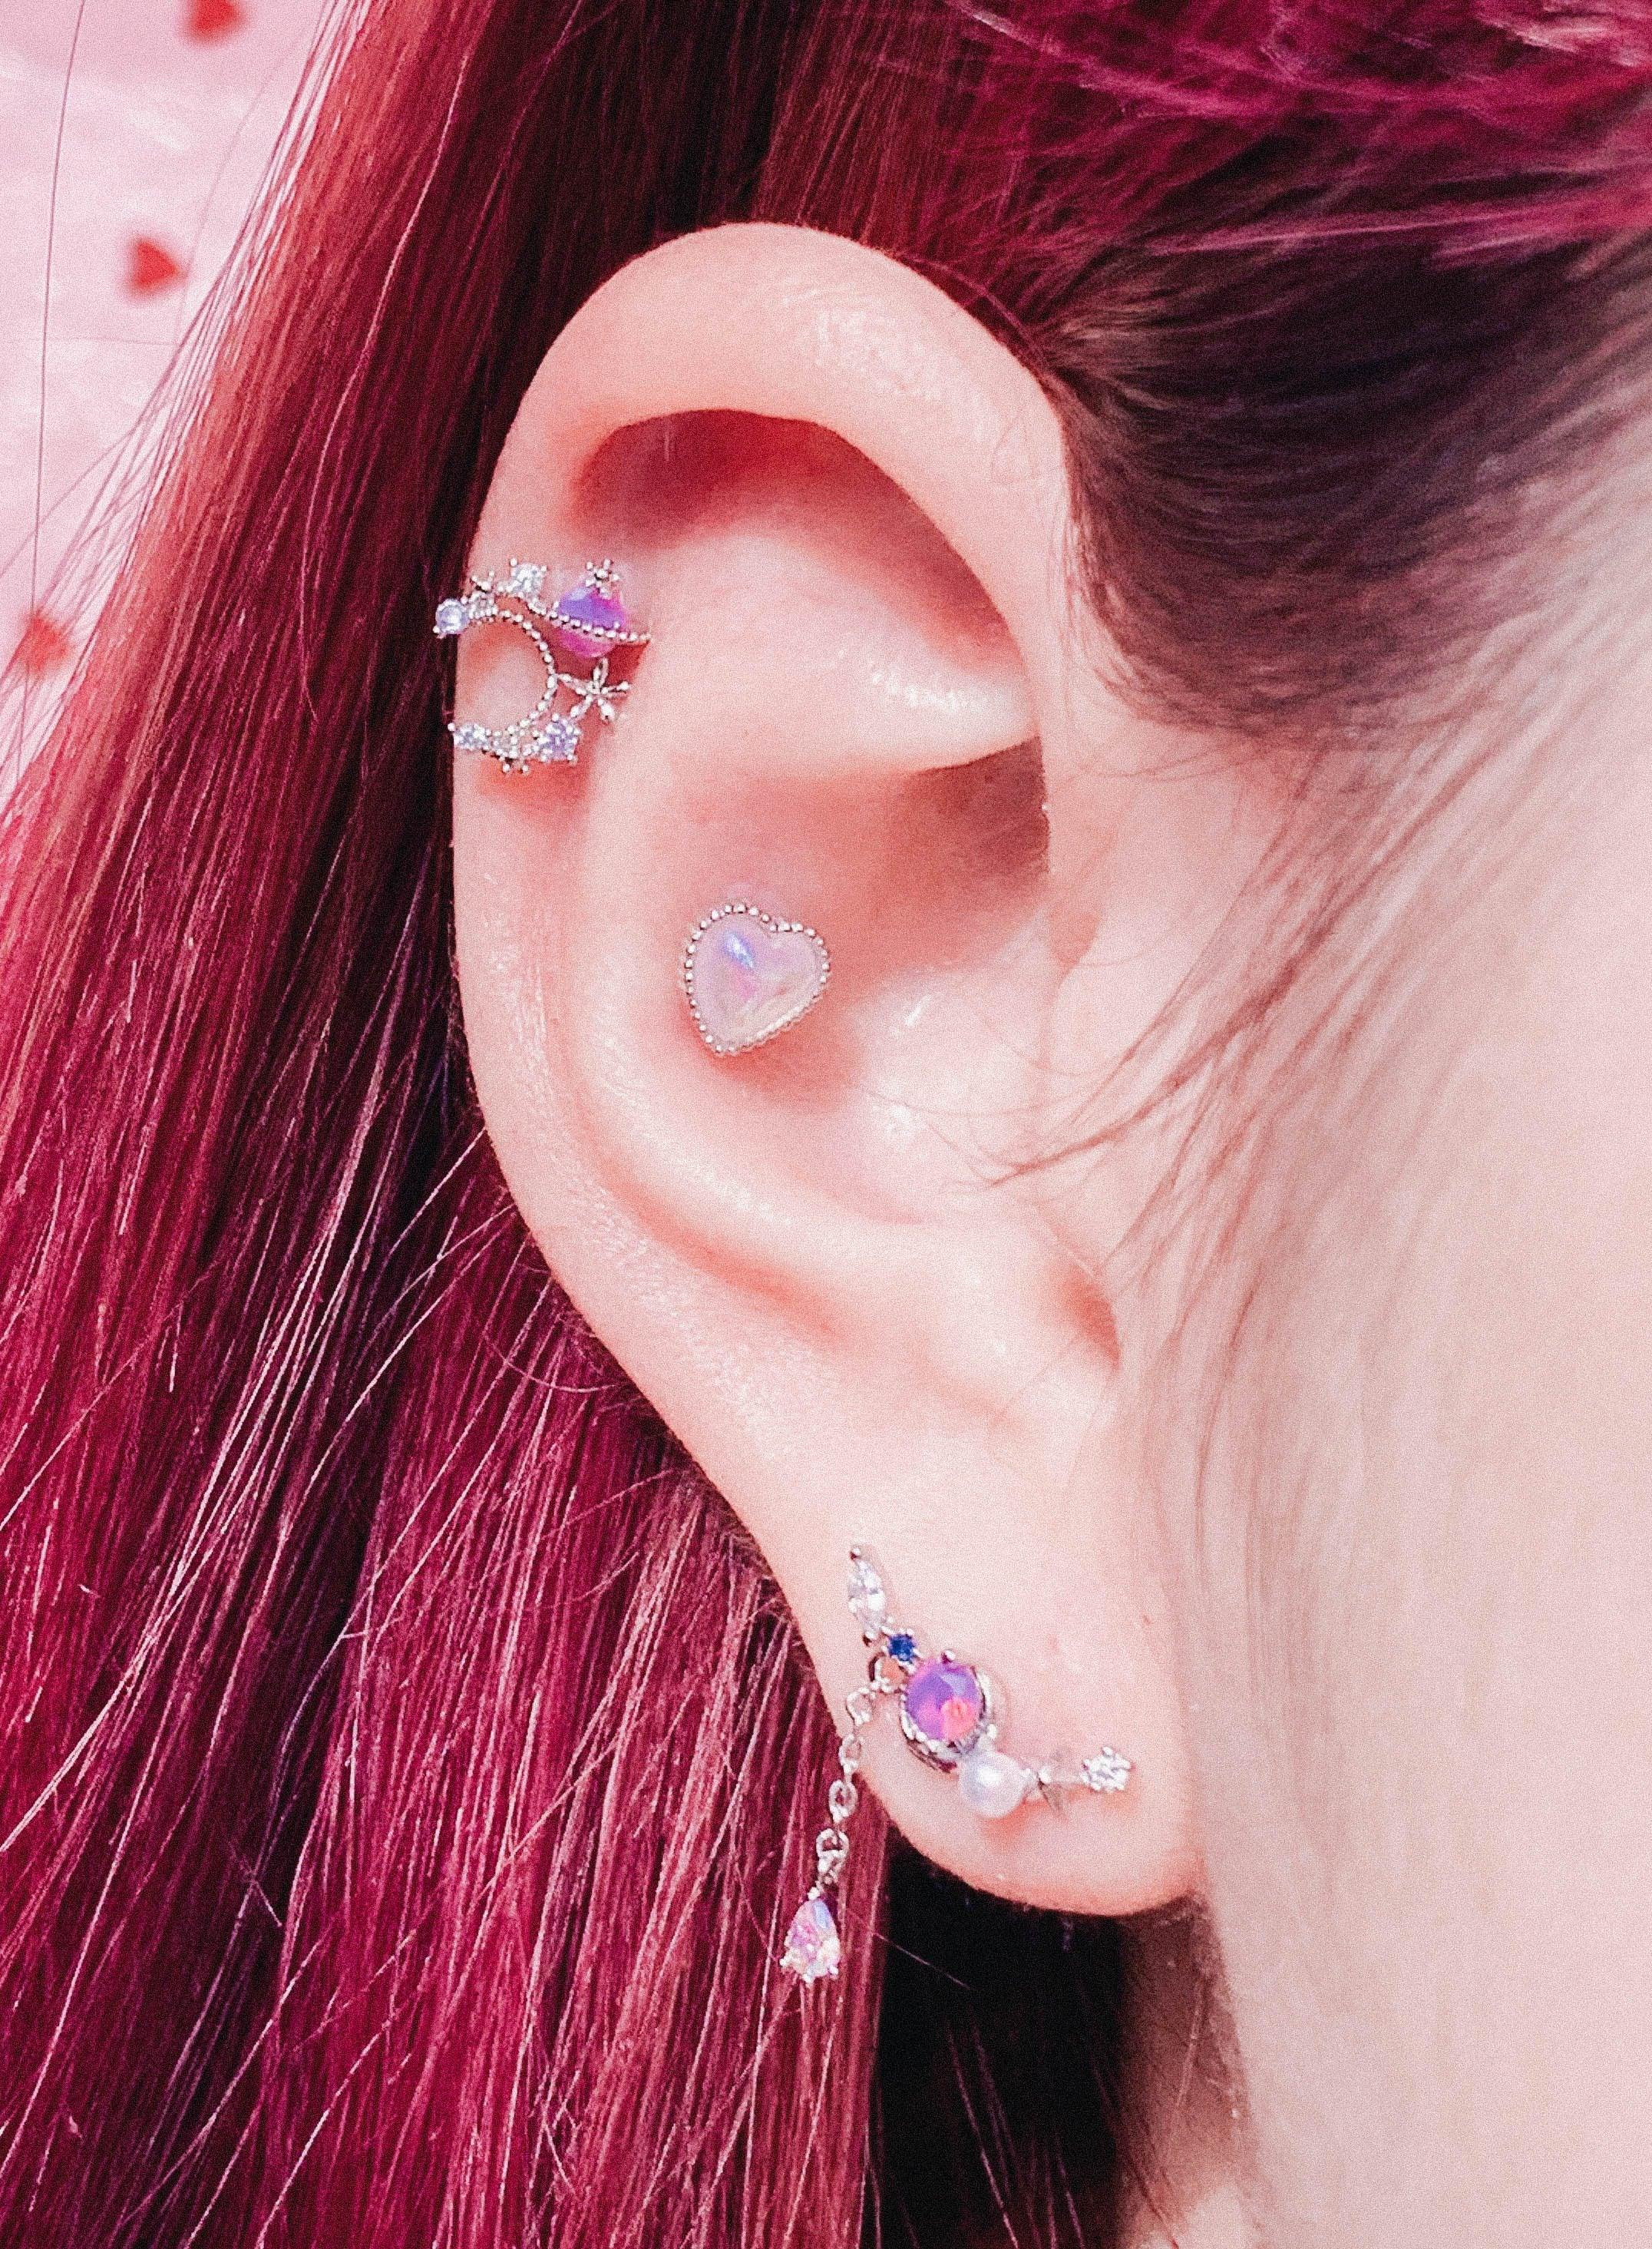 VIOLET Moonwalk (ピアス/ピアッシング) Piercing anything else